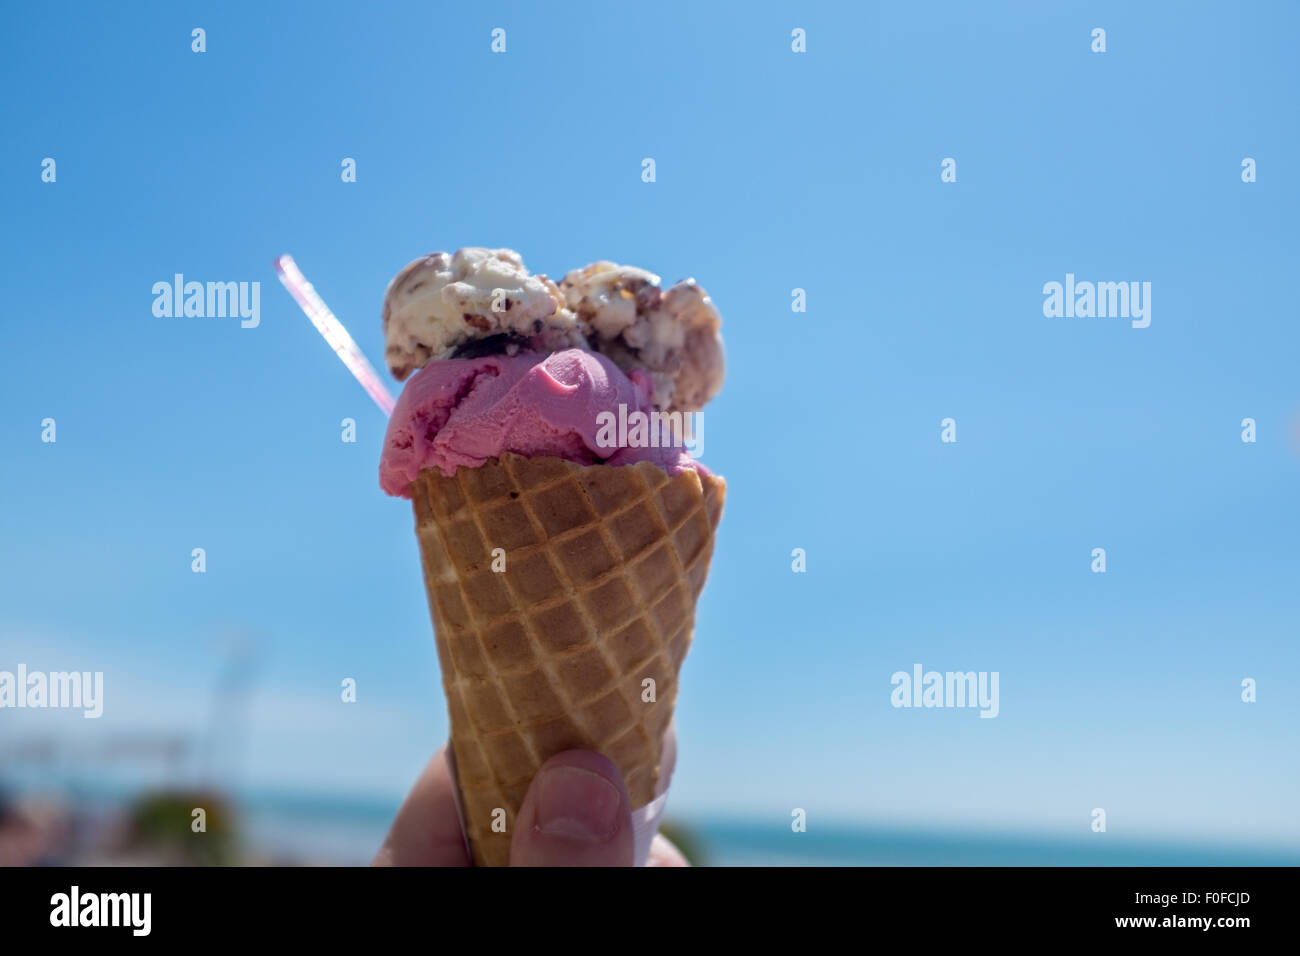 Ice cream cone against a bright clear blue summer sky - Stock Image